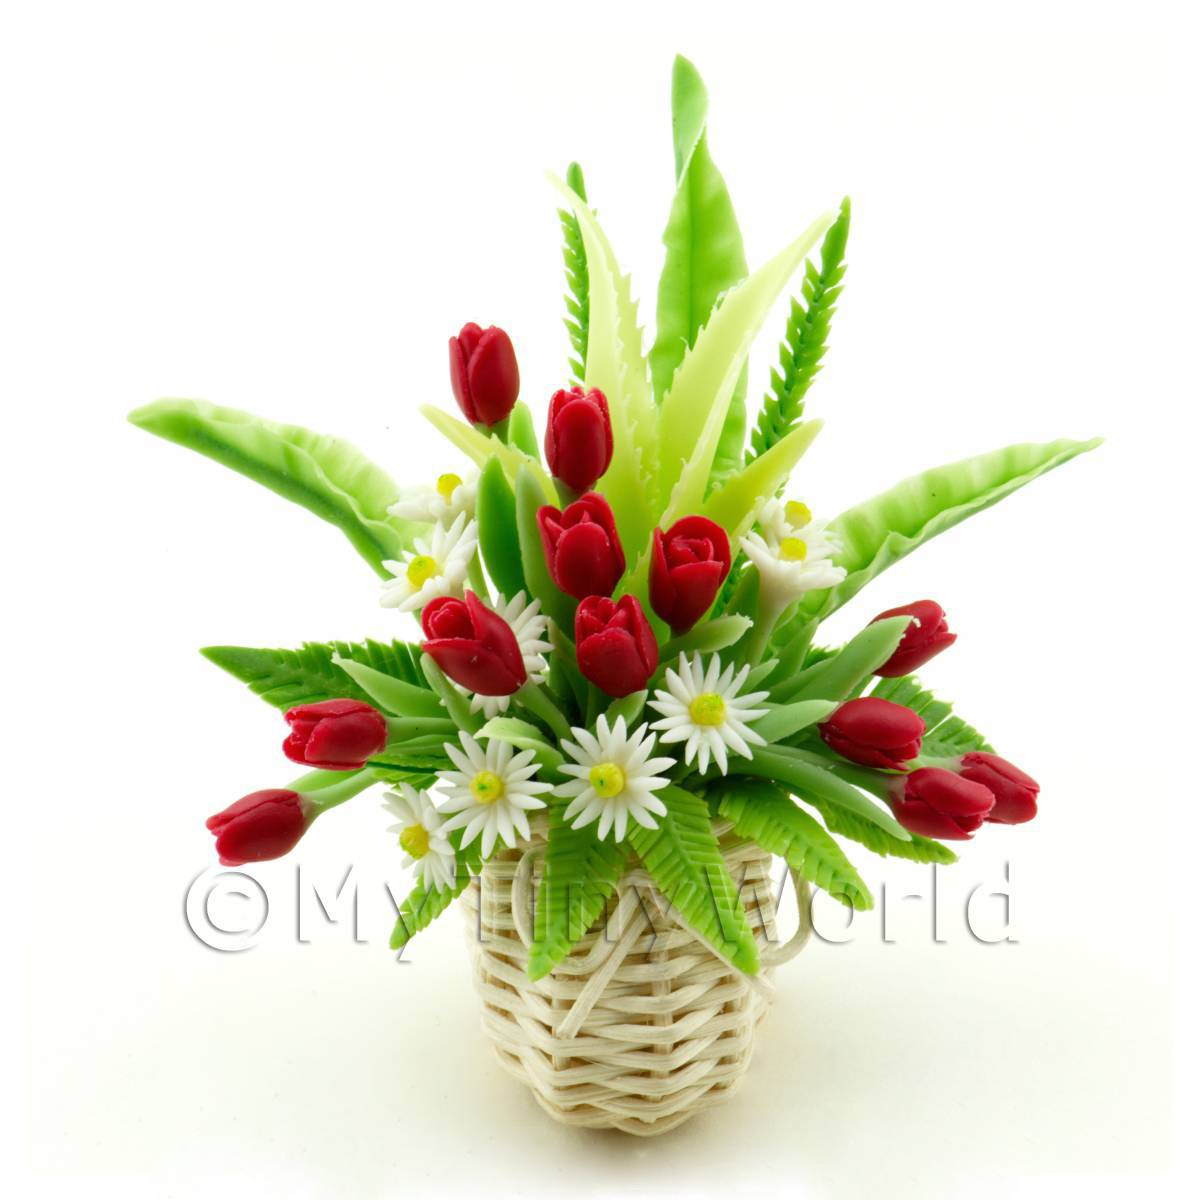 Dolls House Miniature Roses Daises in a Arrangement